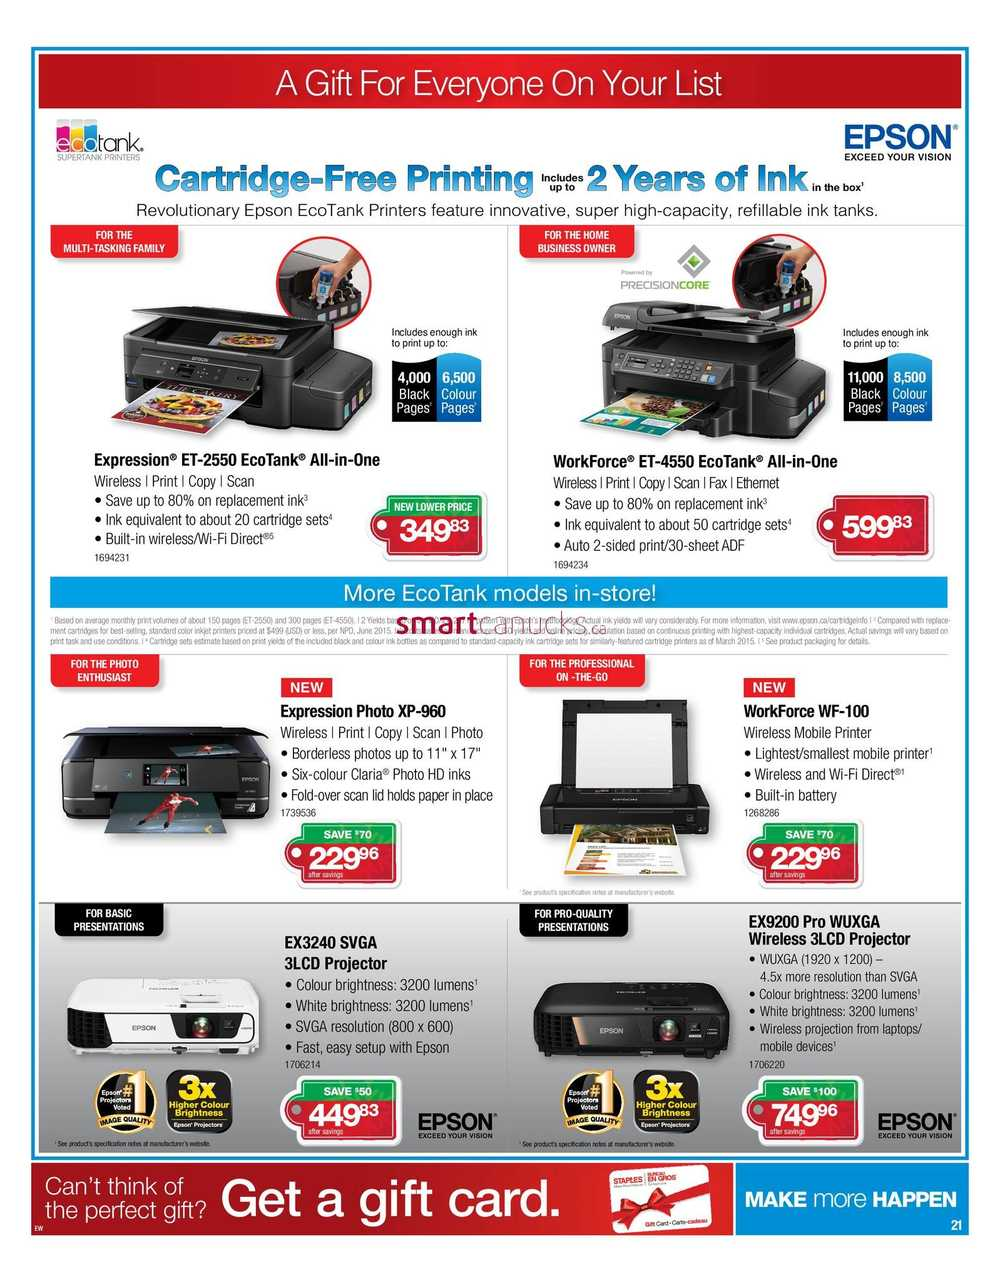 Staples coupon for epson ink